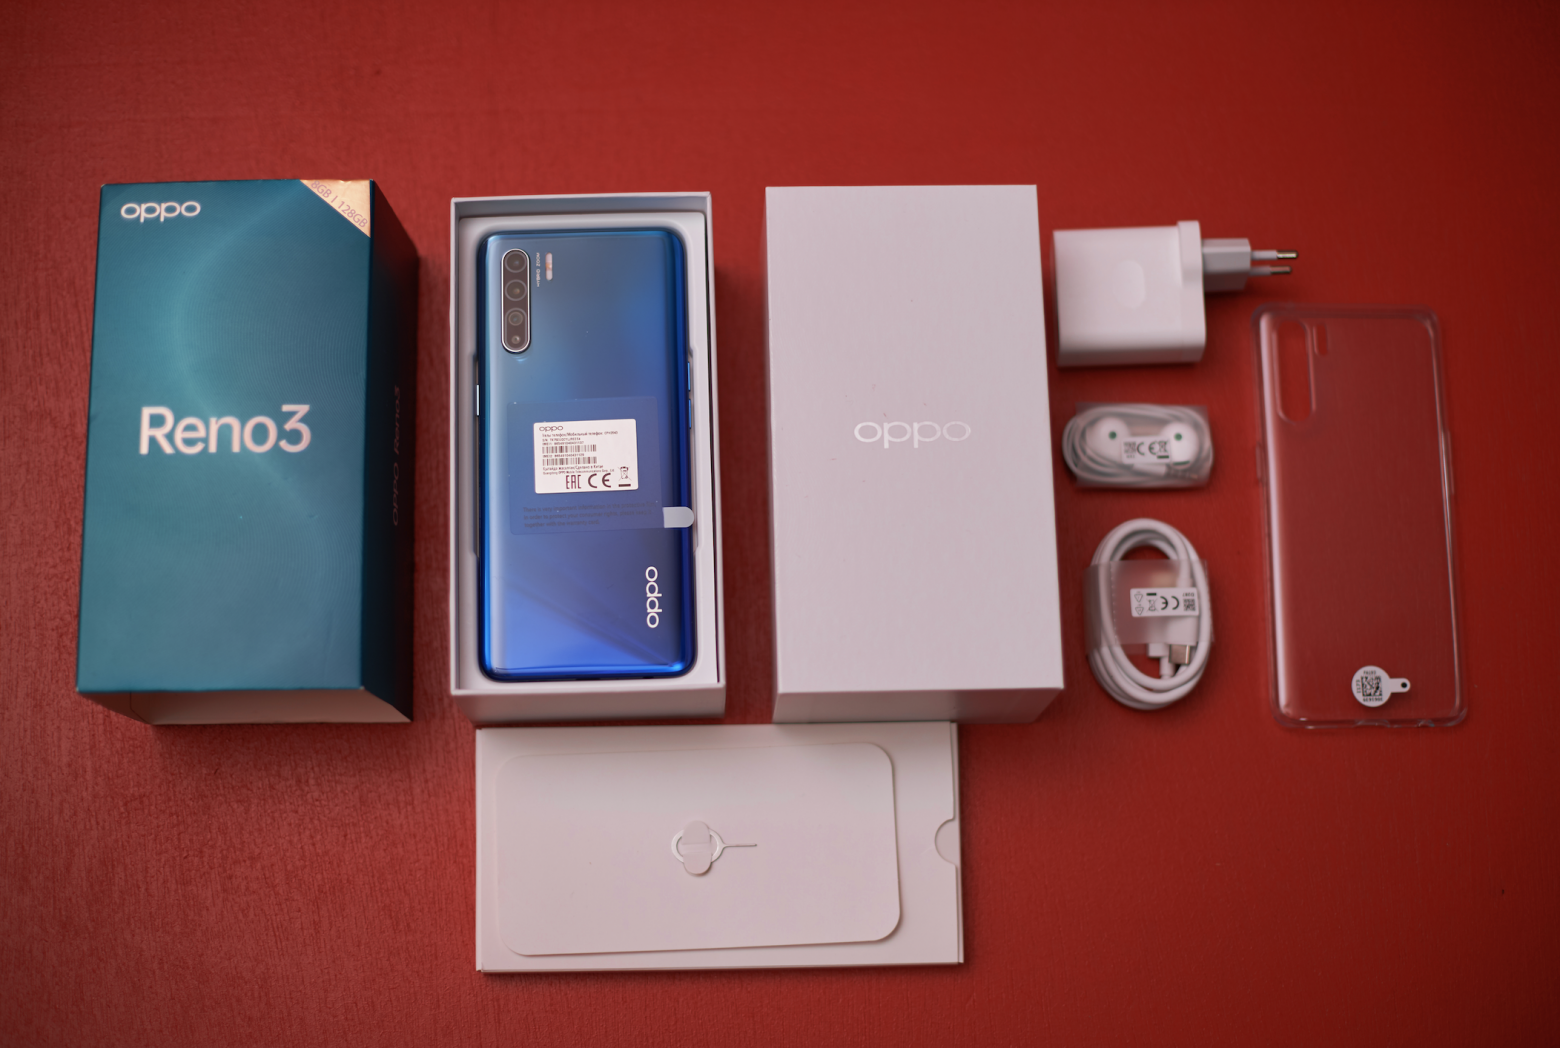 OPPO-Reno-3.png